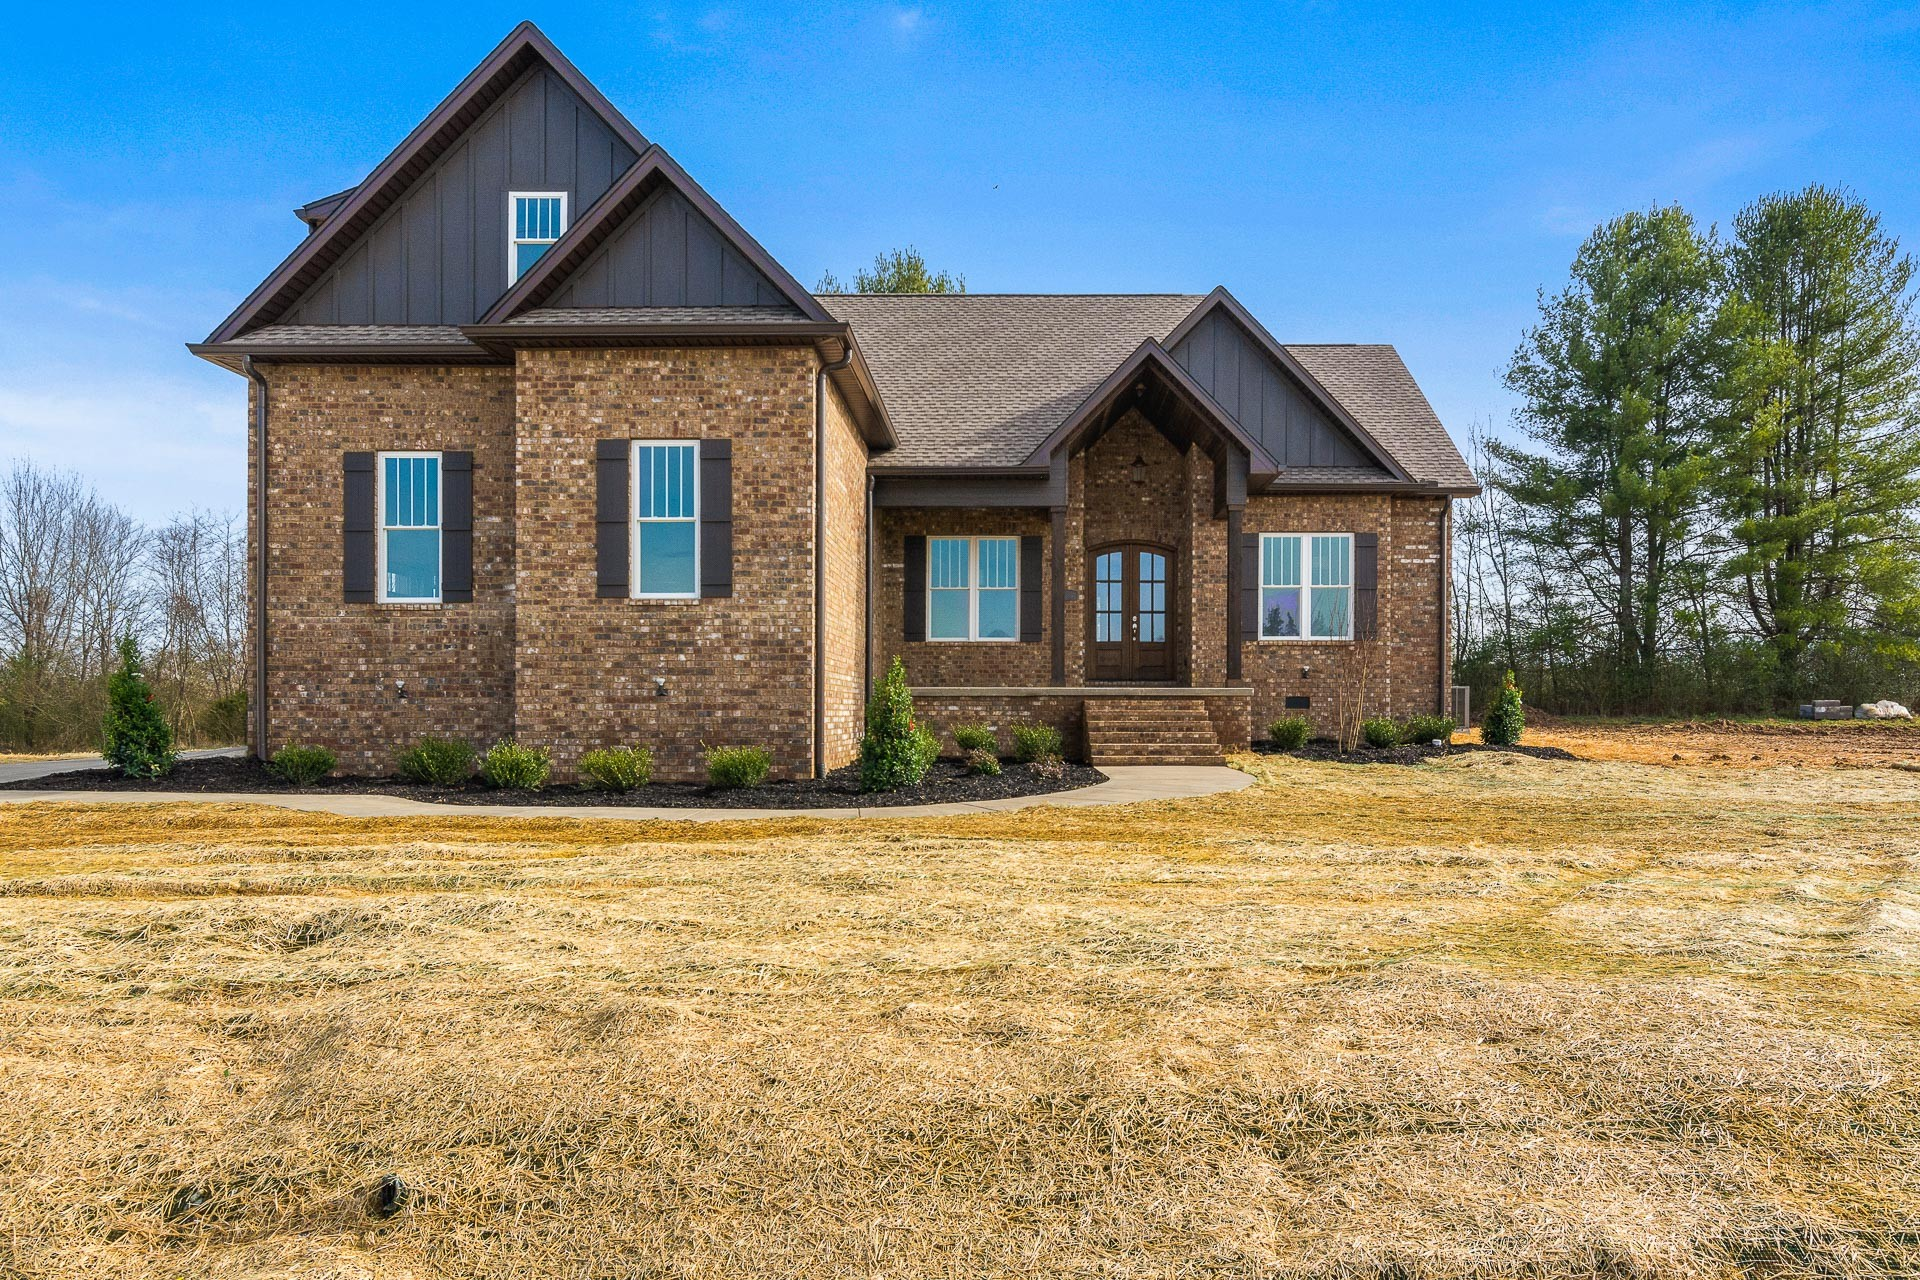 345 Chestnut Oak Avenue, Smithville, TN 37166 - Smithville, TN real estate listing